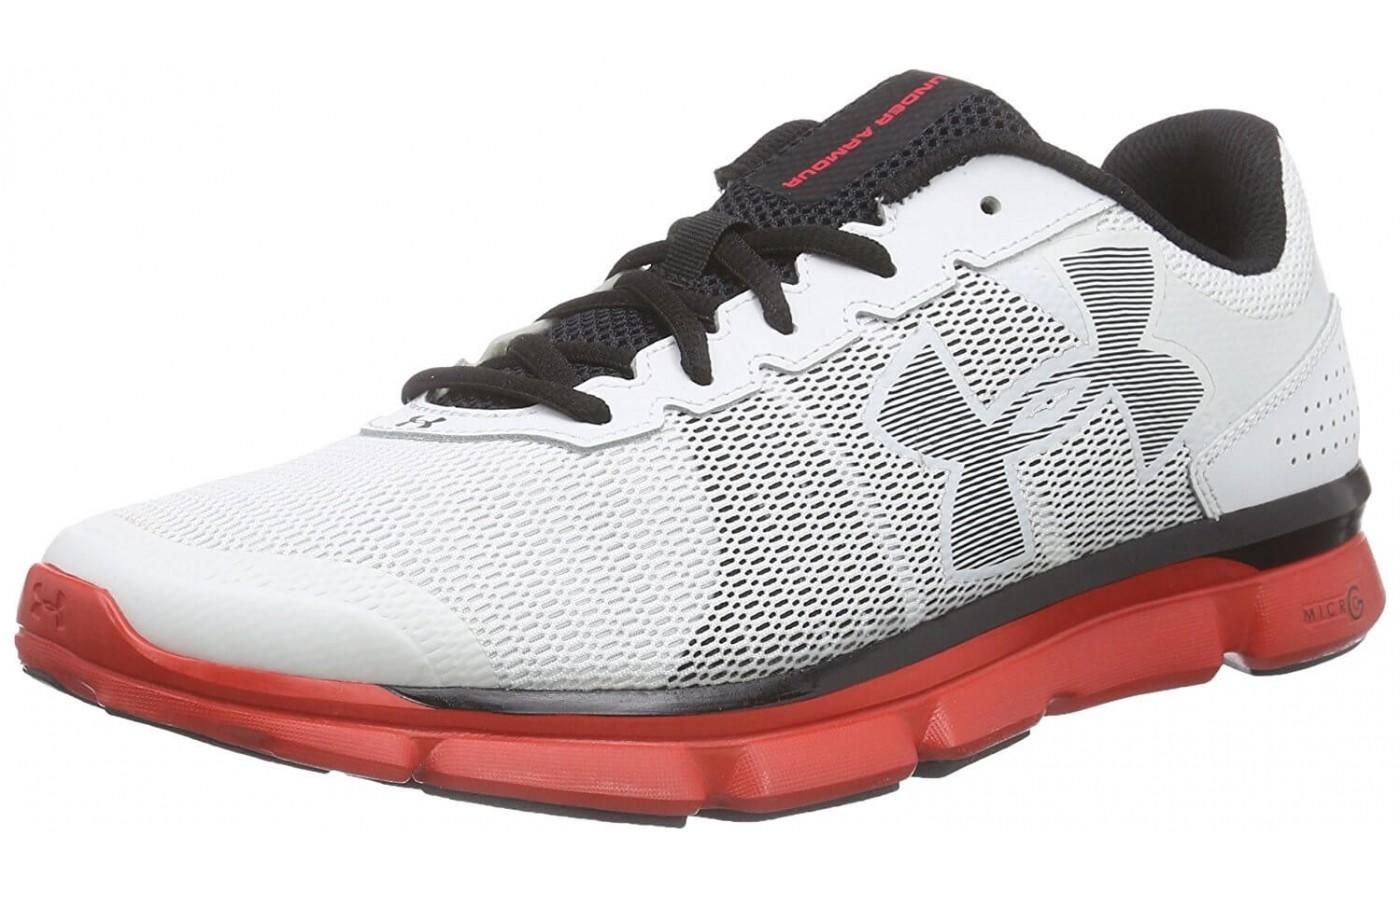 An In Depth Review of the UA Micro G Speed Swift Shoes